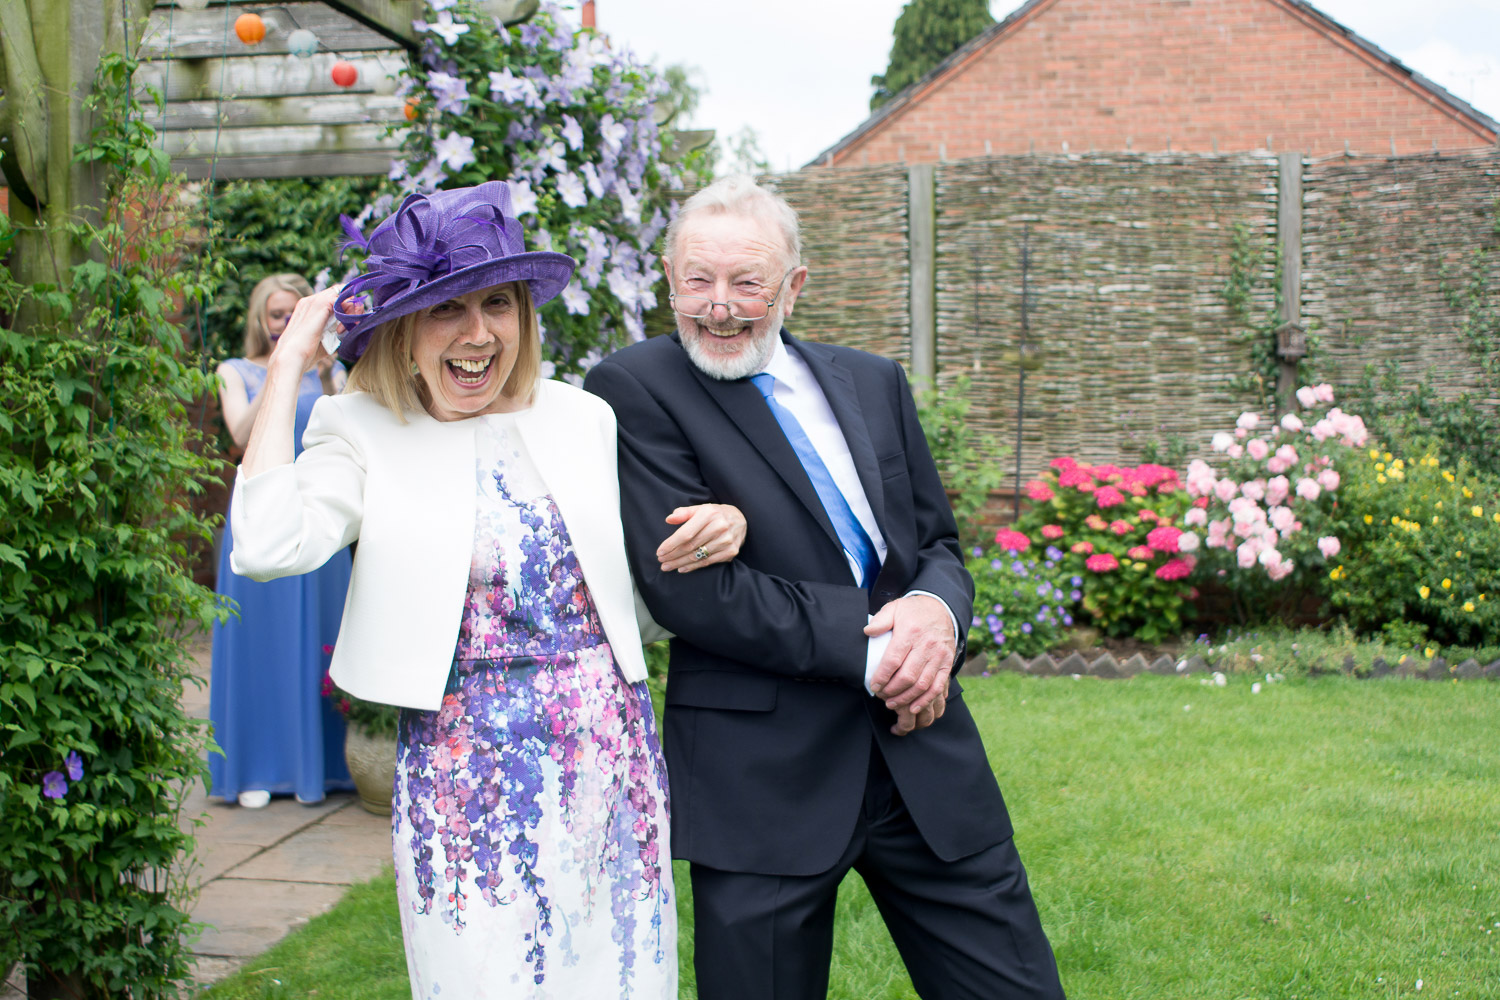 brides parents arm in arm with huge smiles at wedding yurts wedding in leicestershire